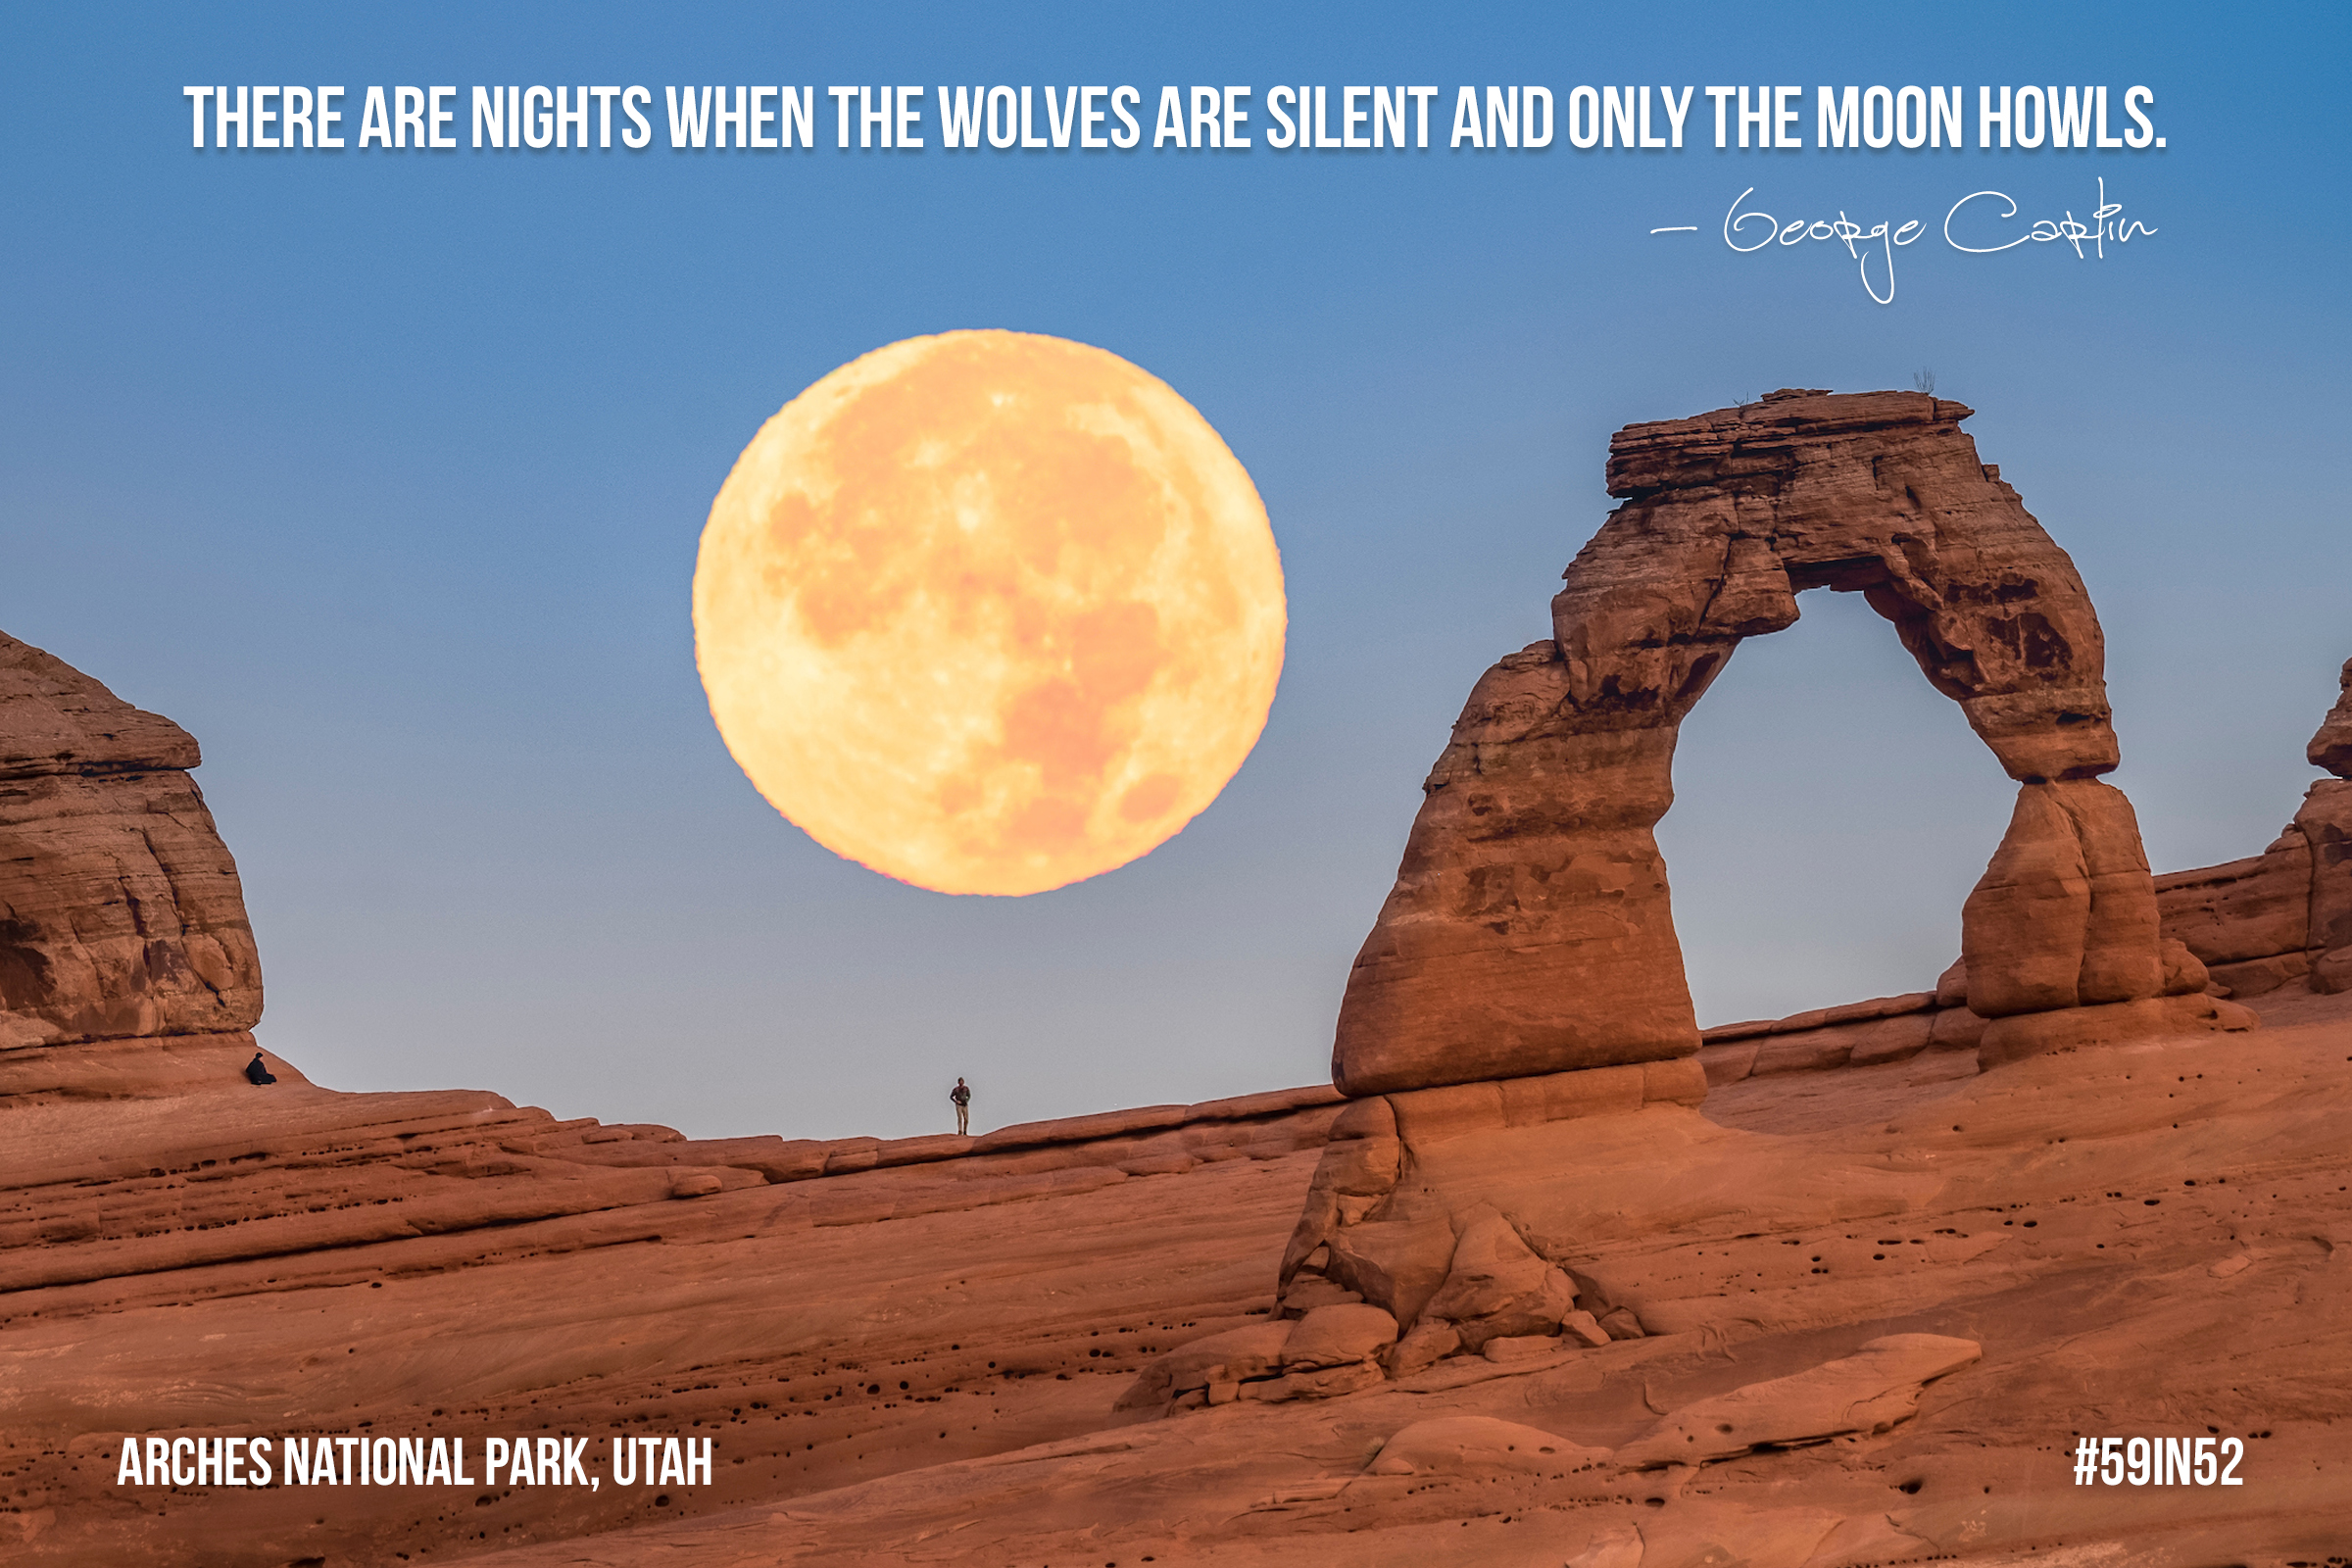 'There are nights when the wolves are silent and only the moon howls.' - George Carlin